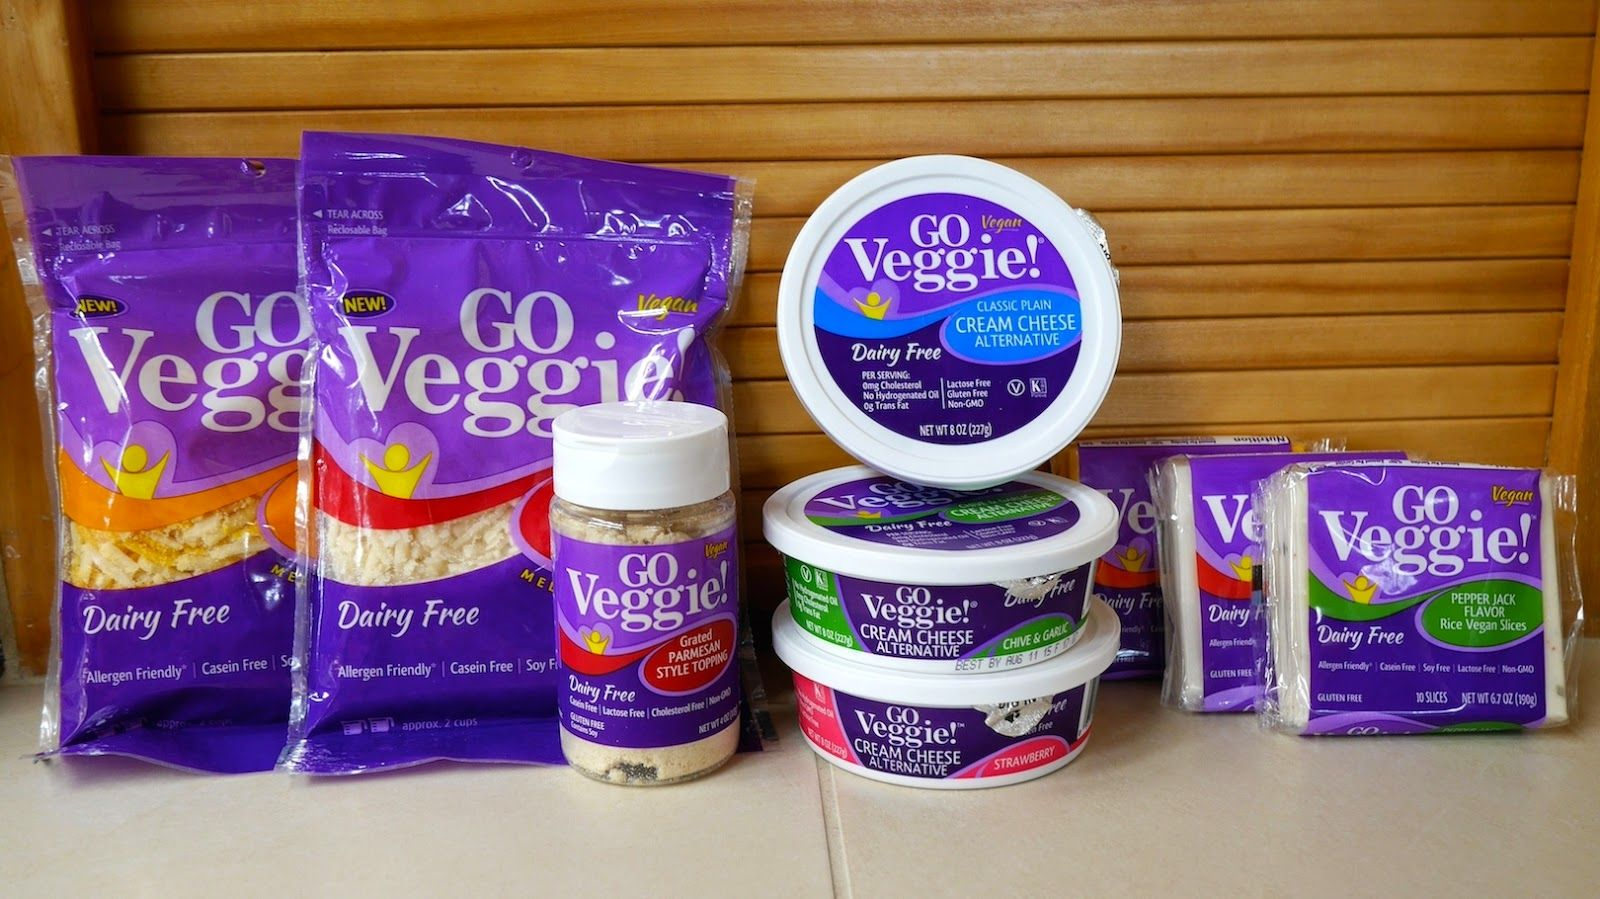 Review Of Go Veggie Vegan Cheese Productsshreds Cream Cheese Slices Parm Toppingcompare To Daiya And Tofutti Go Veggie Tofutti Vegan Cheese